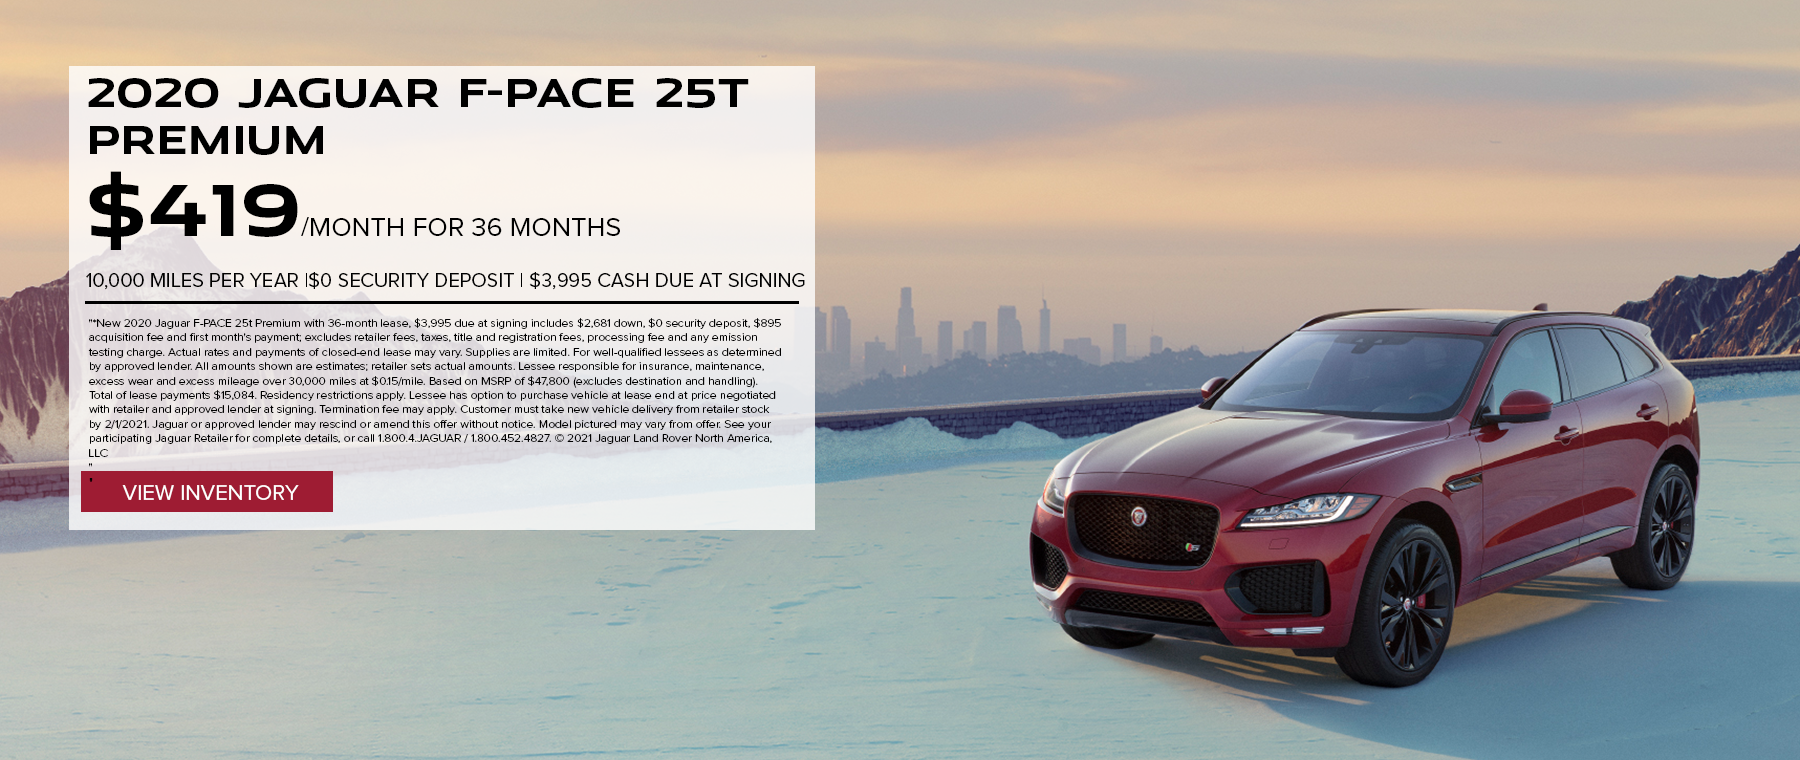 2020 JAGUAR F-PACE 25T PREMIUM. $419 PER MONTH. 36 MONTH LEASE TERM. $3,995 CASH DUE AT SIGNING. $0 SECURITY DEPOSIT. 10,000 MILES PER YEAR. EXCLUDES RETAILER FEES, TAXES, TITLE AND REGISTRATION FEES, PROCESSING FEE AND ANY EMISSION TESTING CHARGE. OFFER ENDS 2/1/2021.